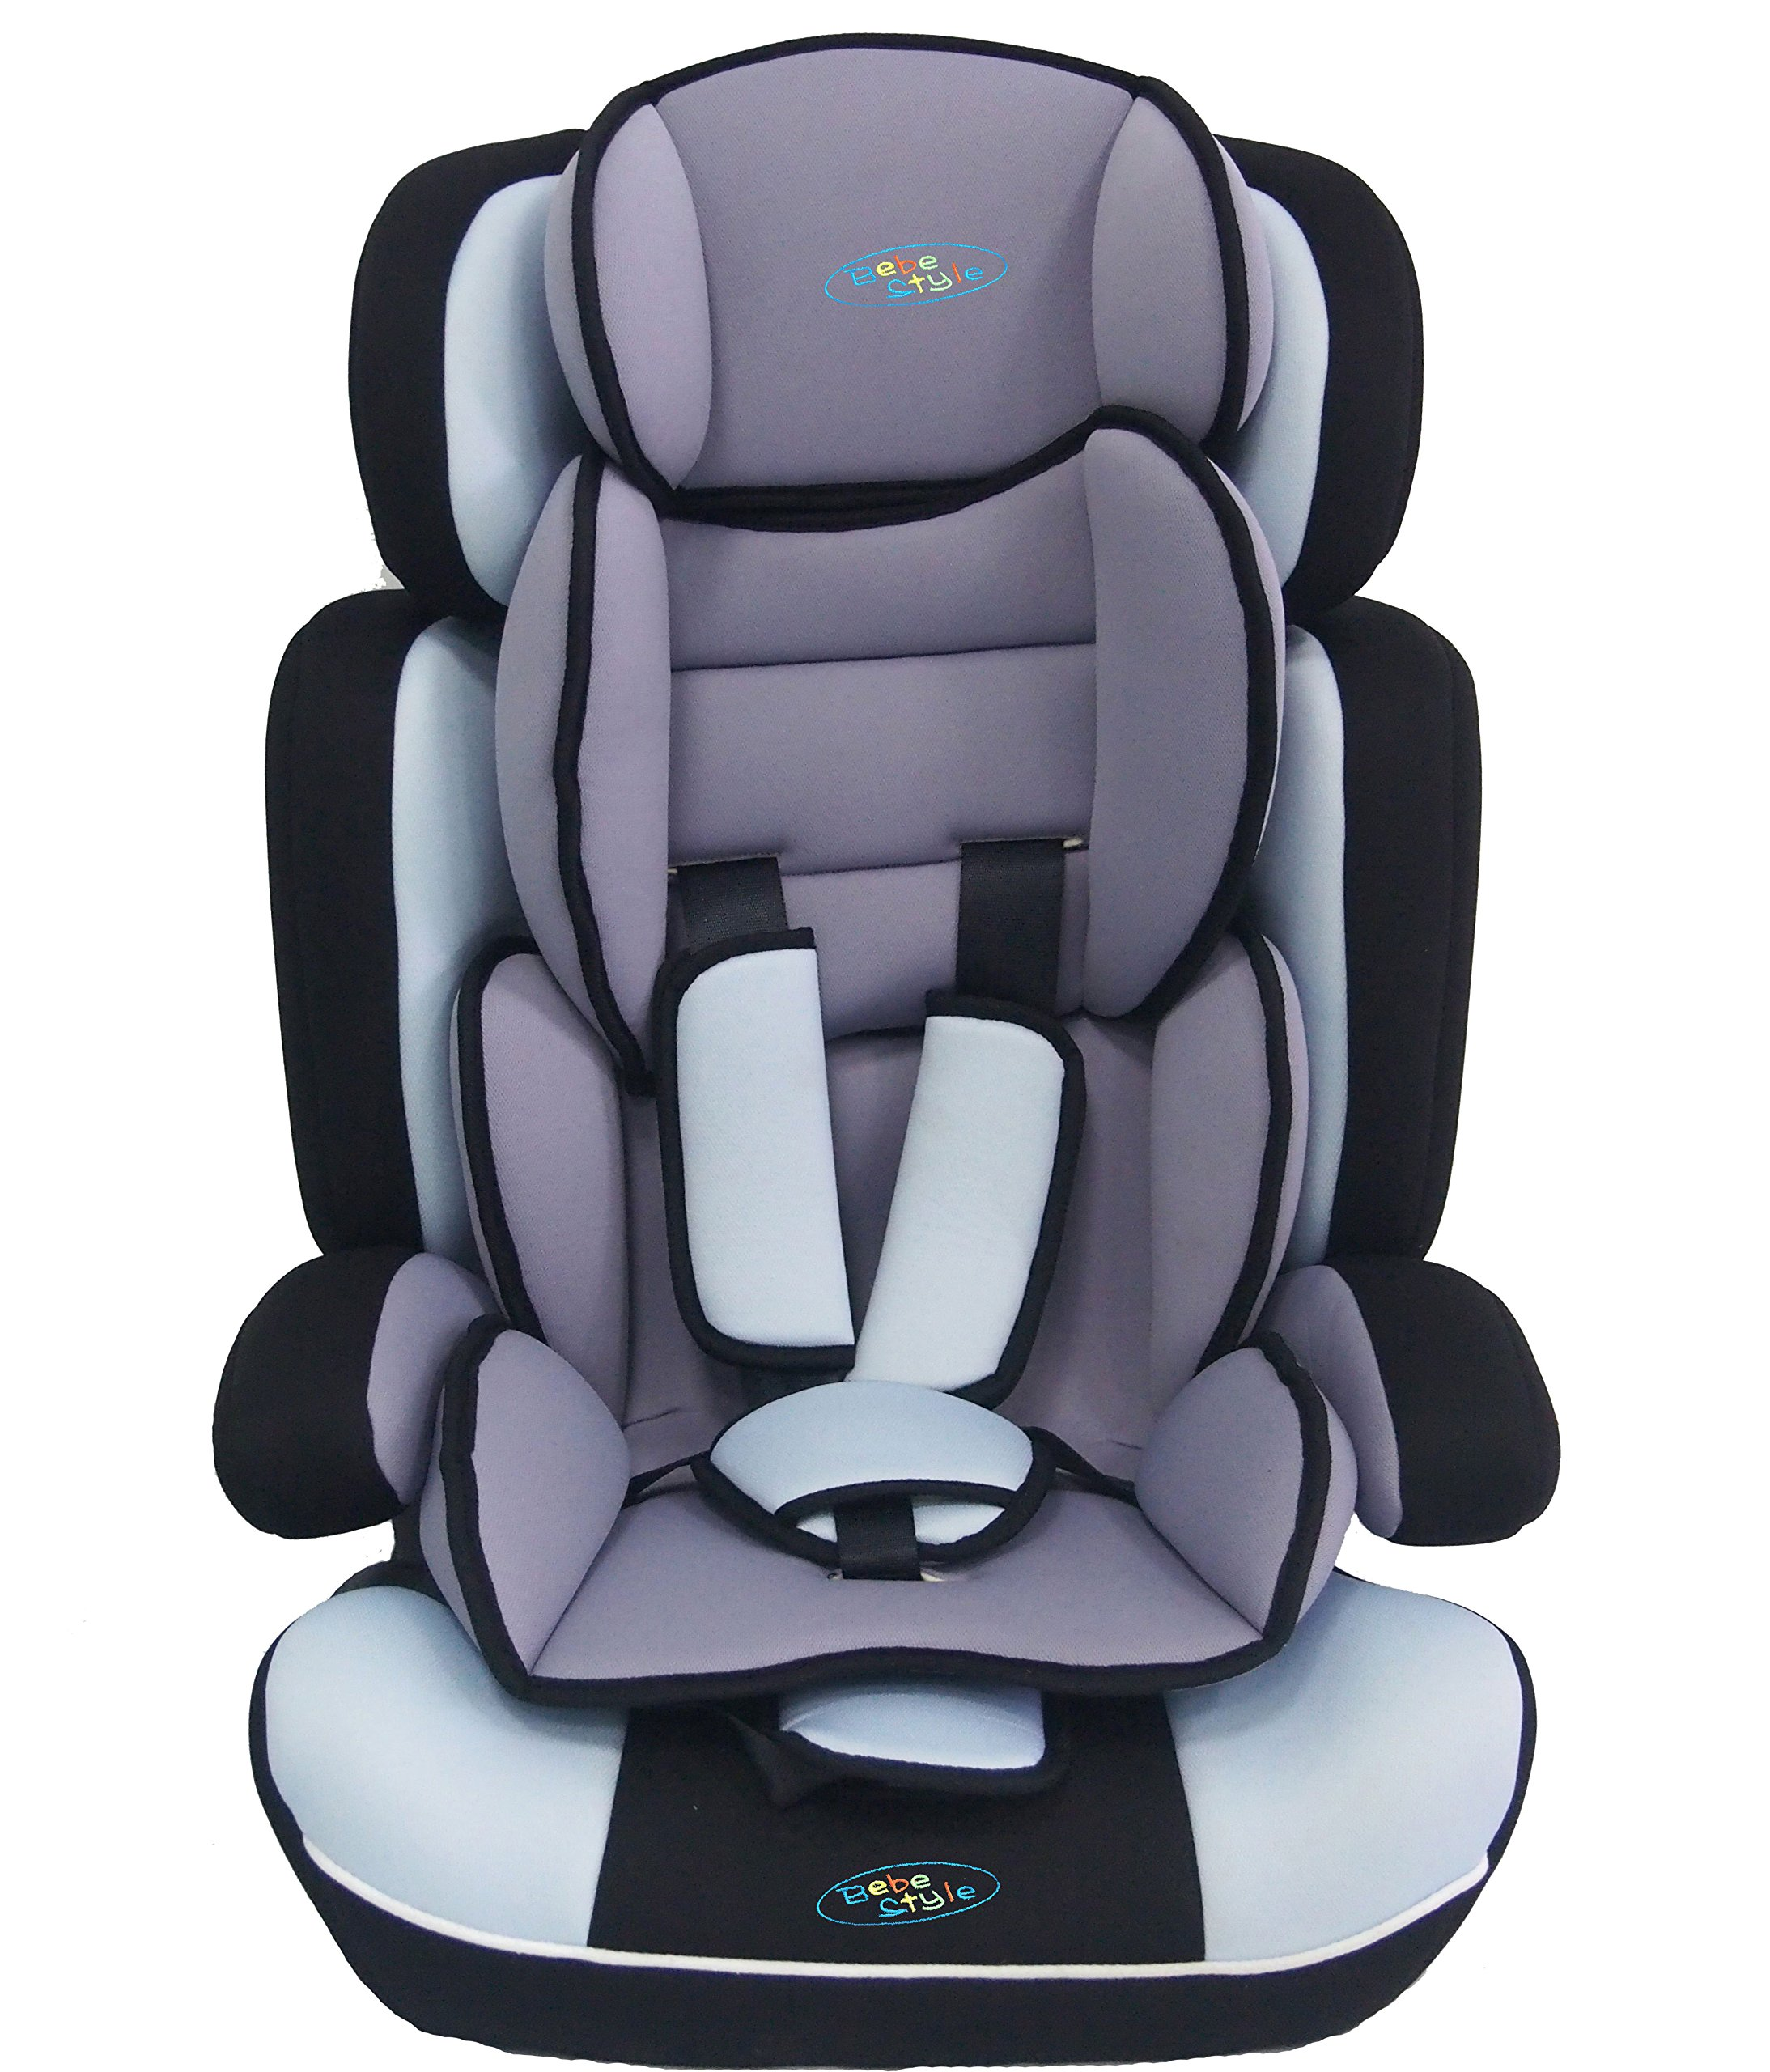 Bebe Style Convertiblle 1/2/3 Combination Car Seat and Booster Seat - Blue  From 9 months to 12 years old, one size fits all (9-36kg) Converts to booster seat.  Very Thick Padding Adjustable height of headrest and shoulder straps for the growing needs of the child 2